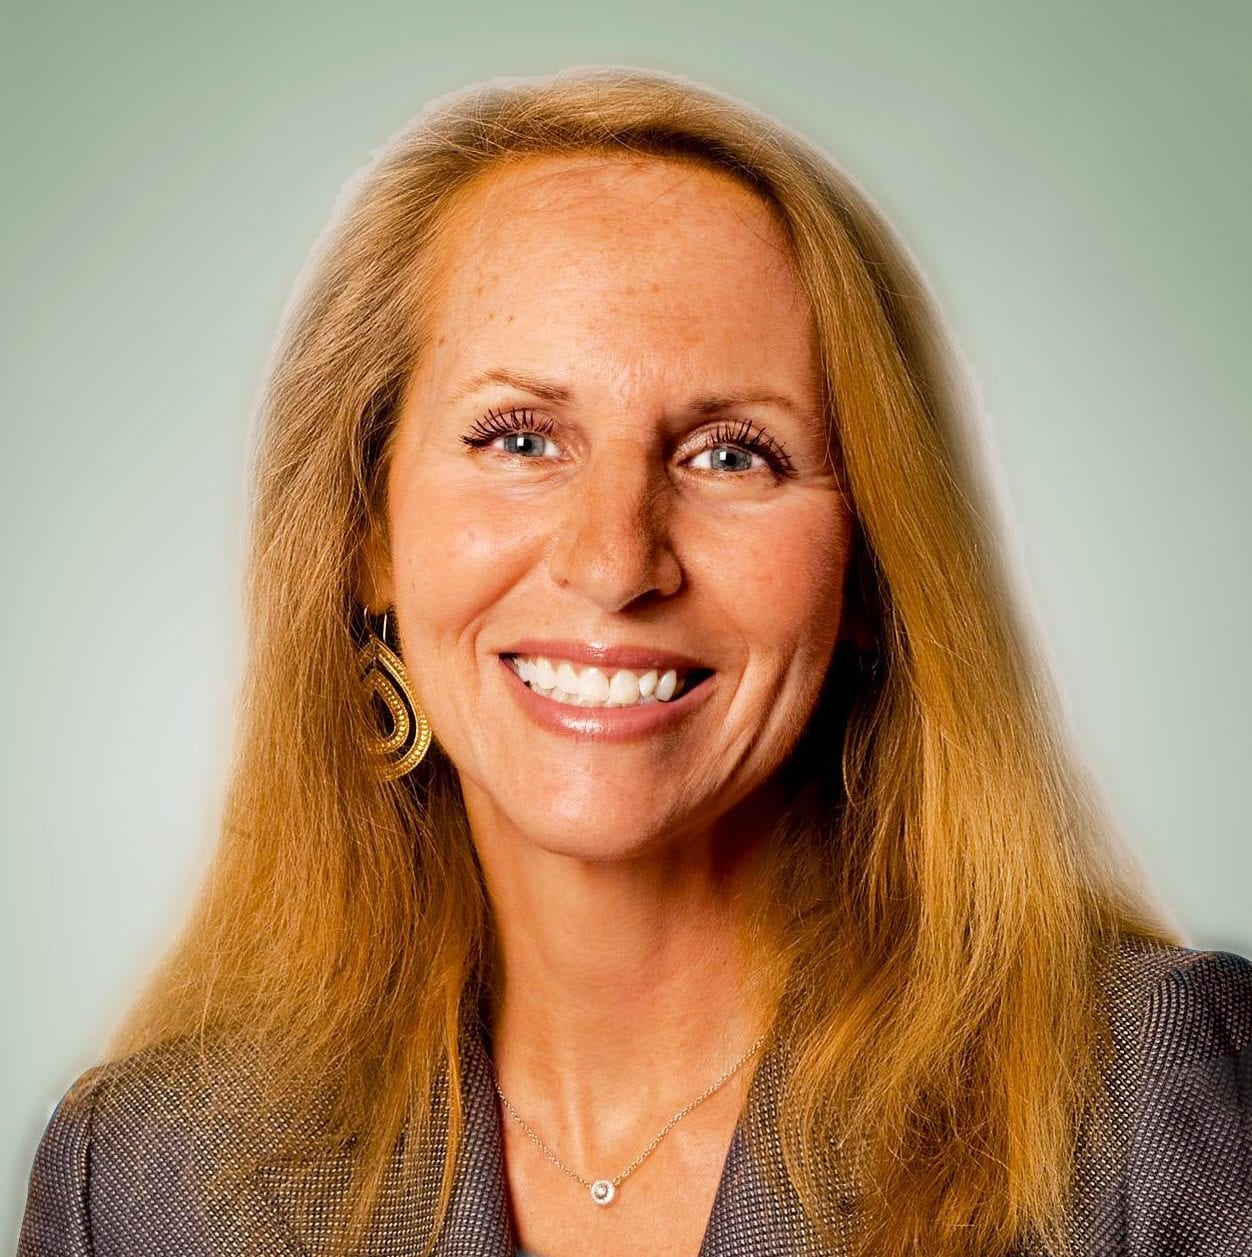 headshot image of Carol Meyrowitz